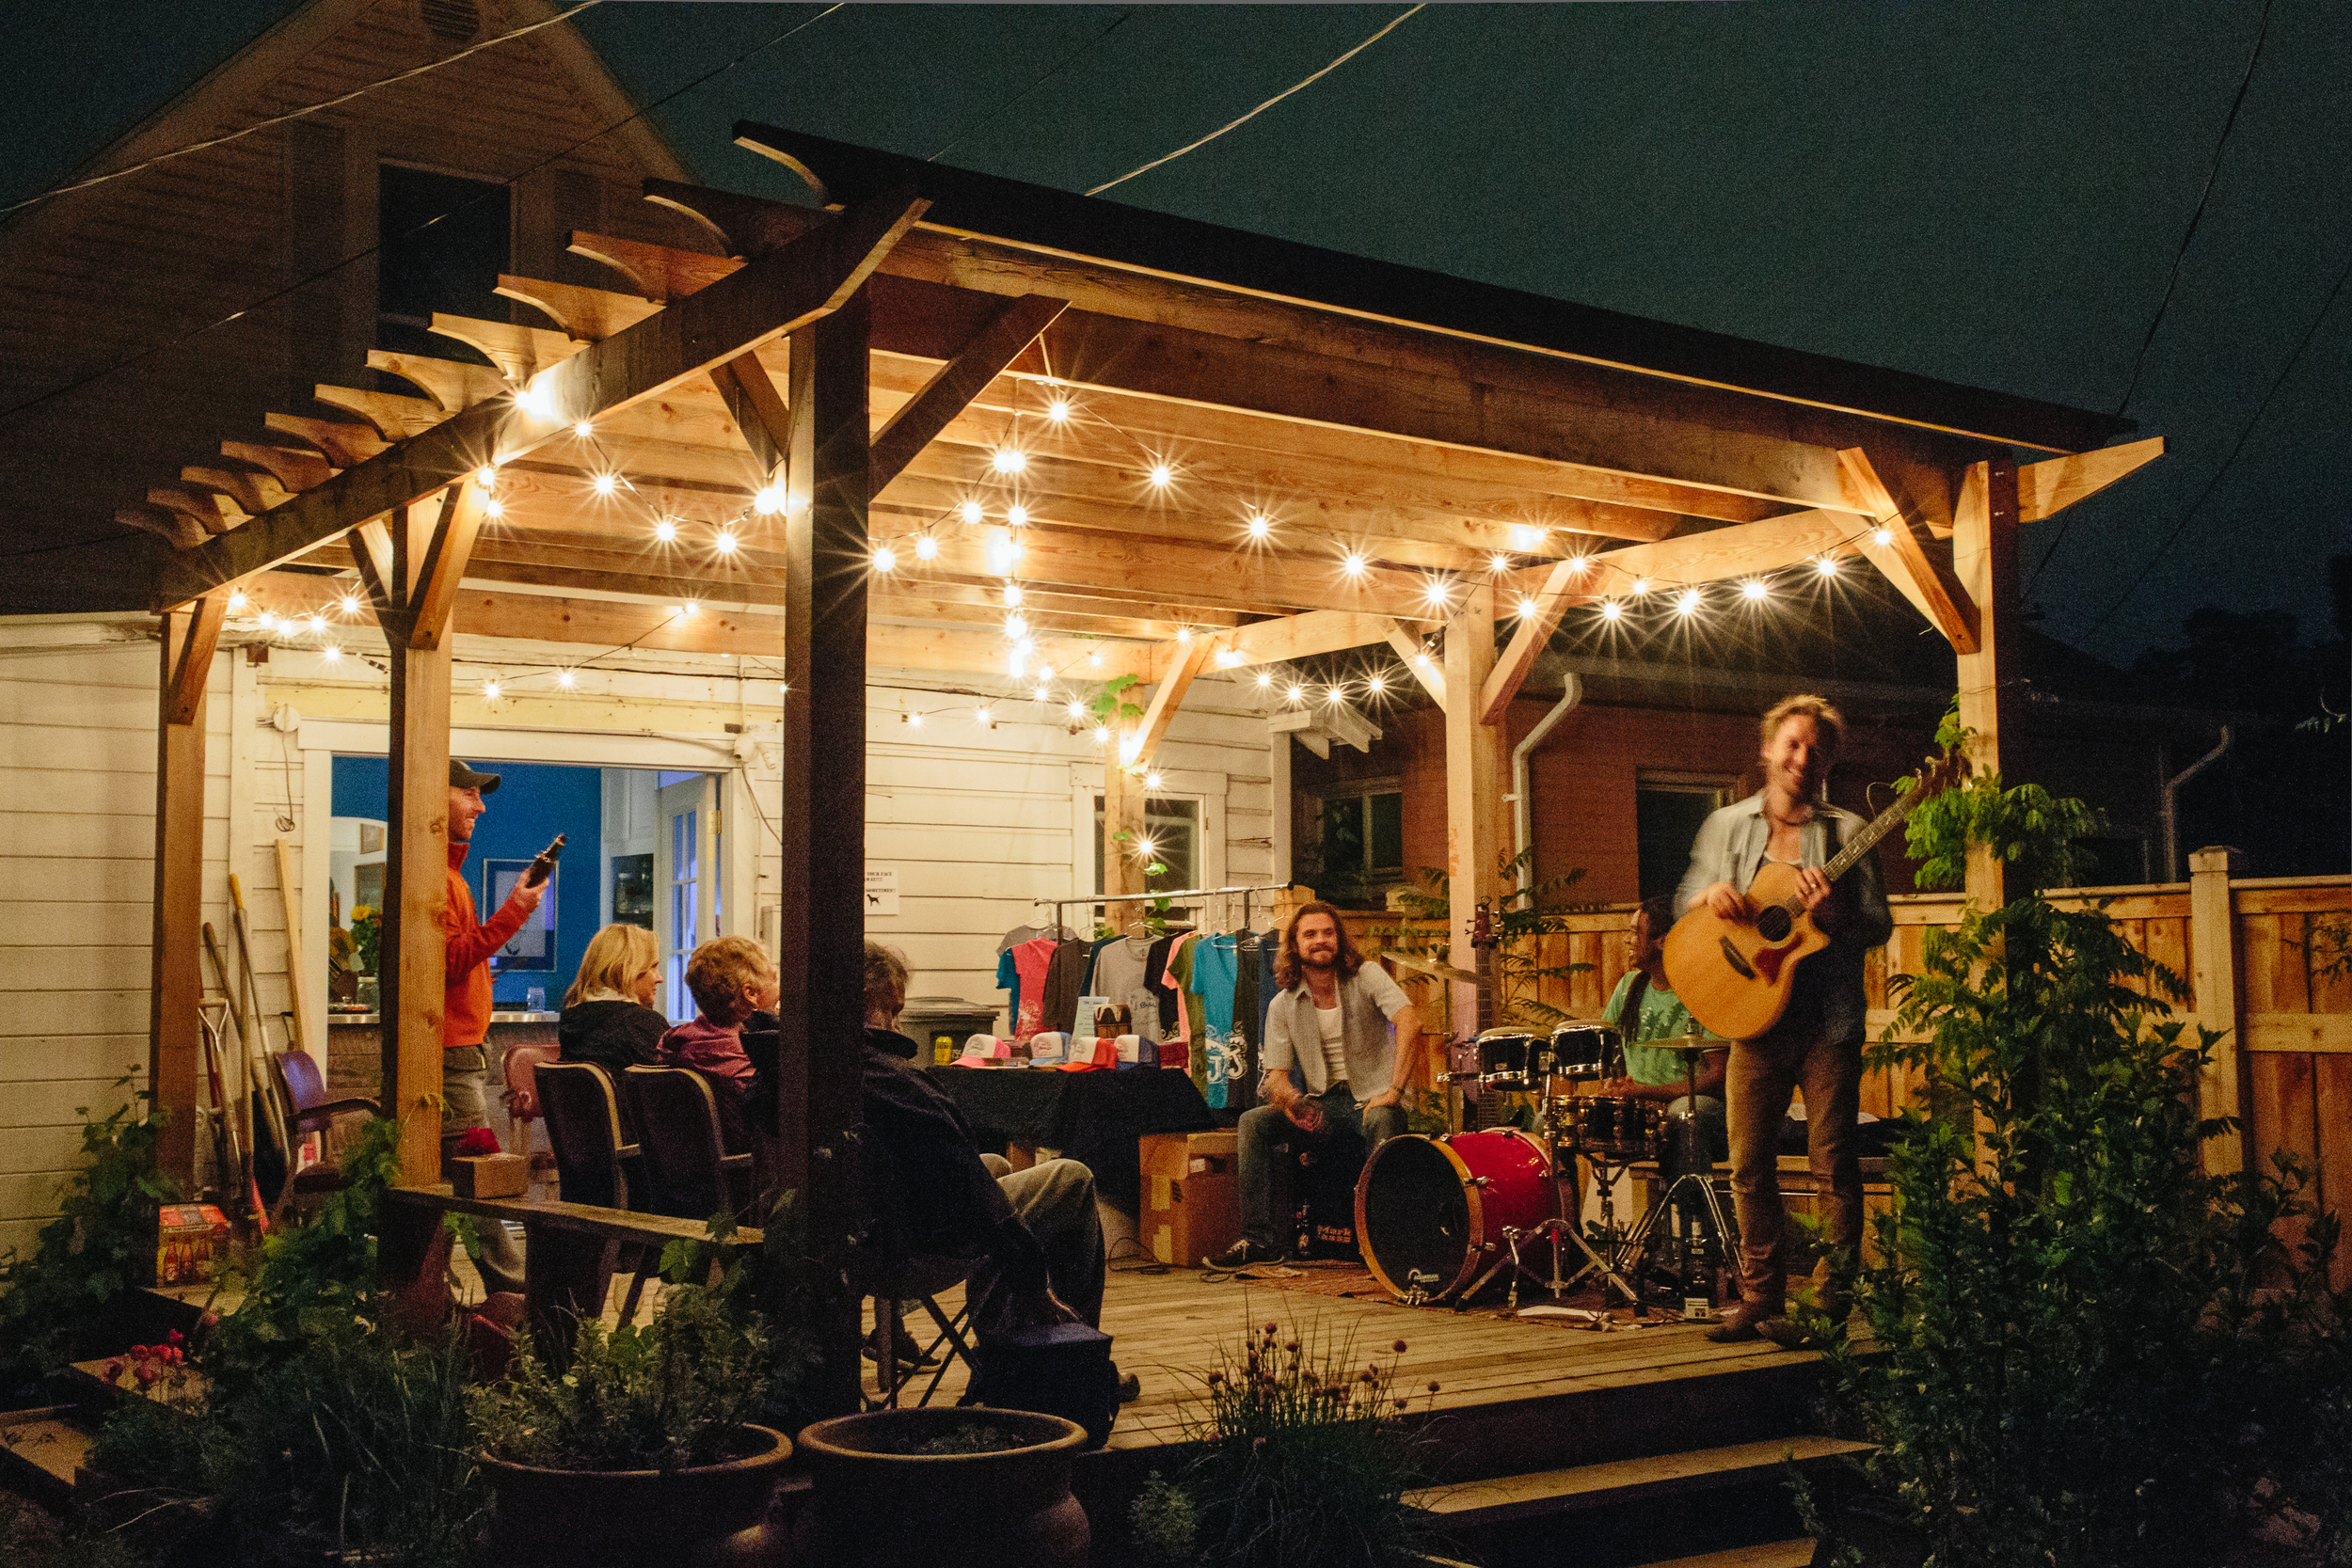 Music nights on the back deck are common.